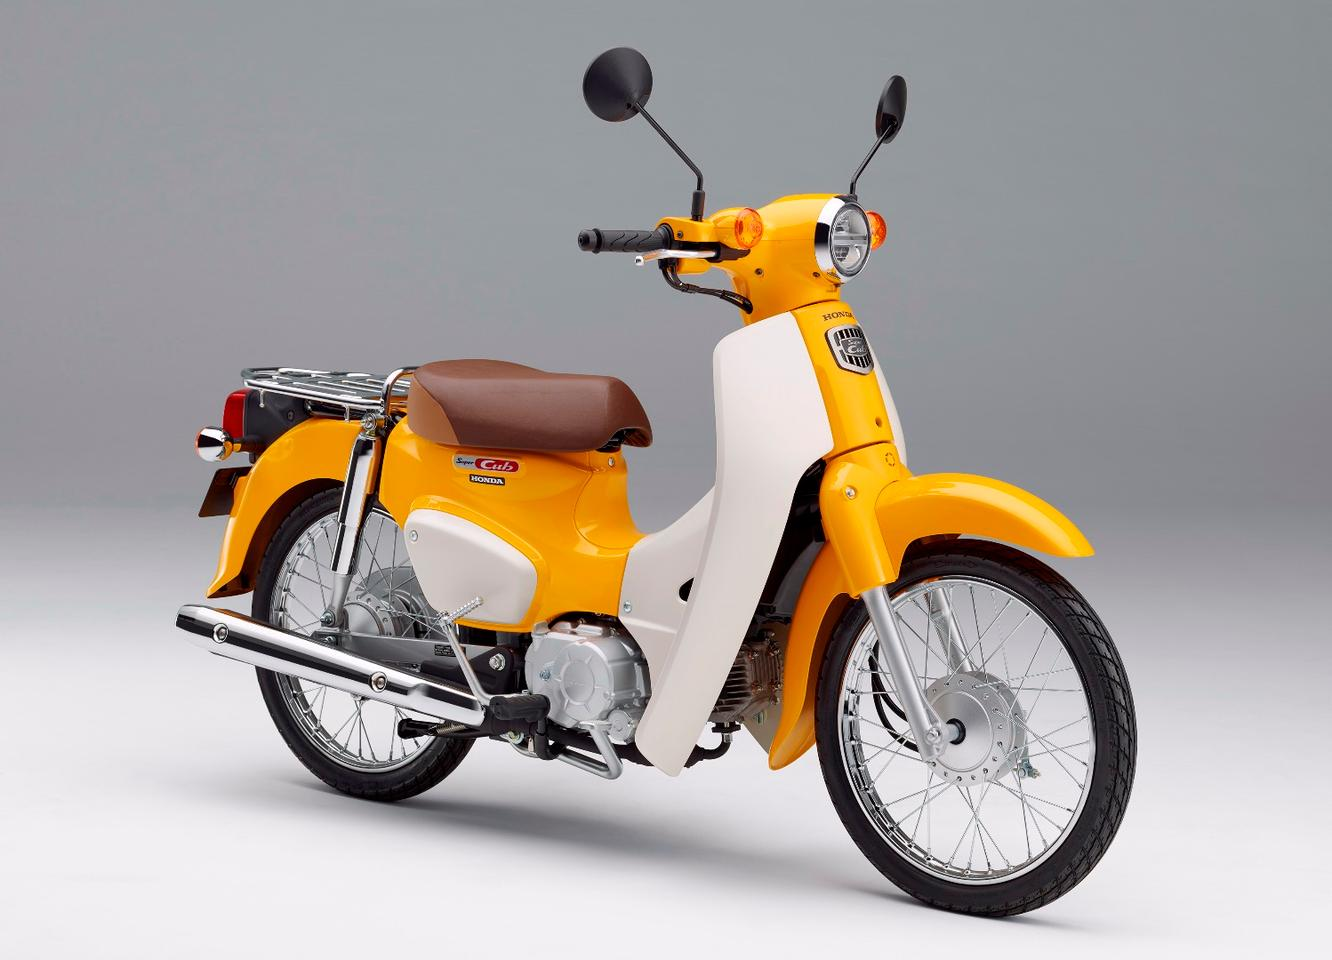 The Honda Super Cub 50 is still in production in Japan, as a direct tribute to the small bike that started it all